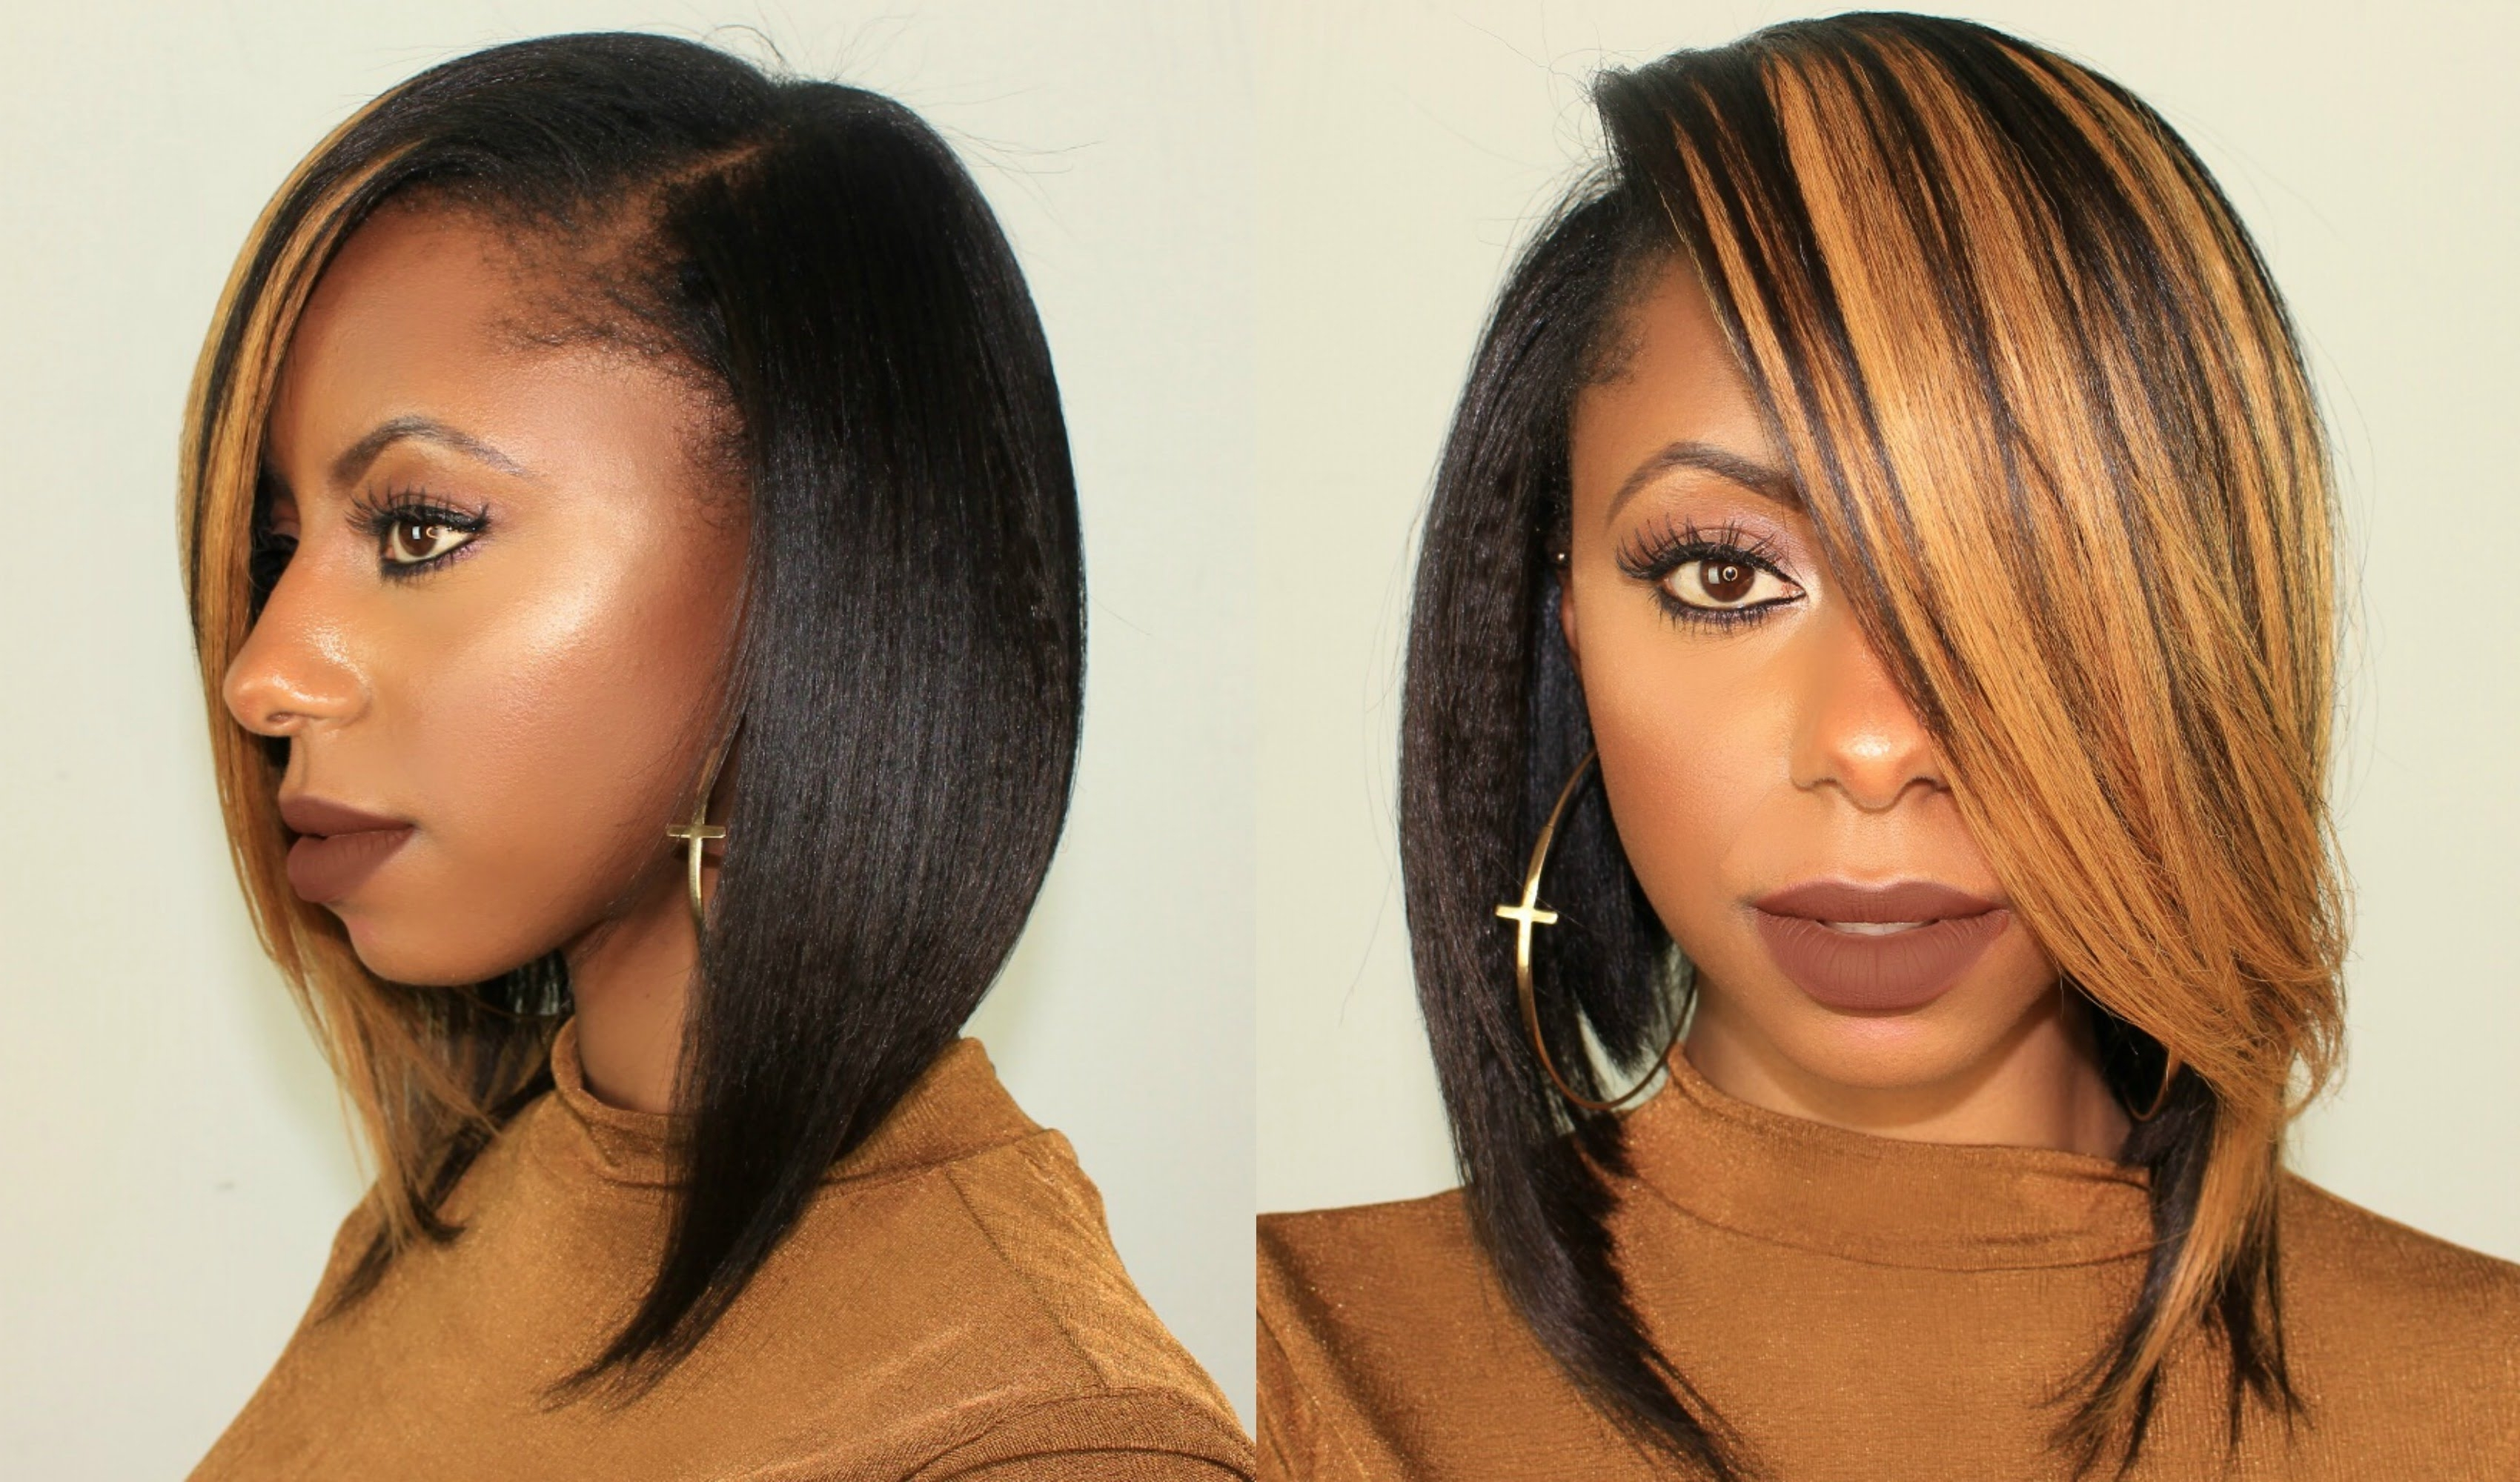 Honey Blonde Long Bob Hairstyle Ft Krshairgroup + 100K Giveaway In Newest Long Honey Blonde And Black Pixie Hairstyles (View 9 of 20)